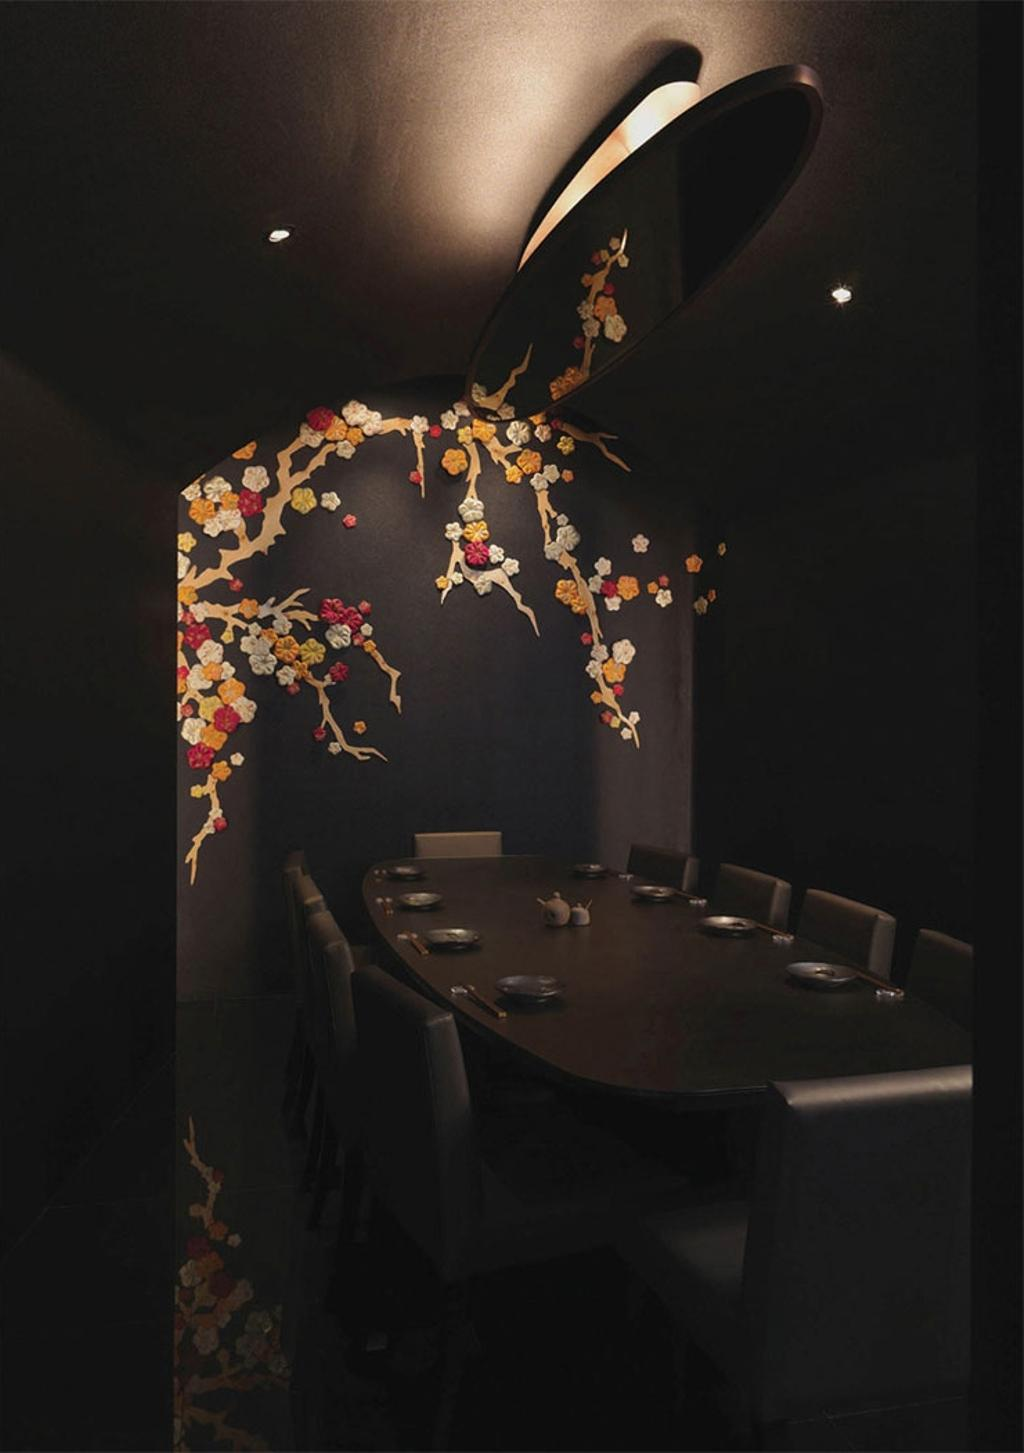 Sho-U Restaurant, Commercial, Architect, Ministry of Design, Transitional, Dining Room, Indoors, Interior Design, Room, Embroidery, Ornament